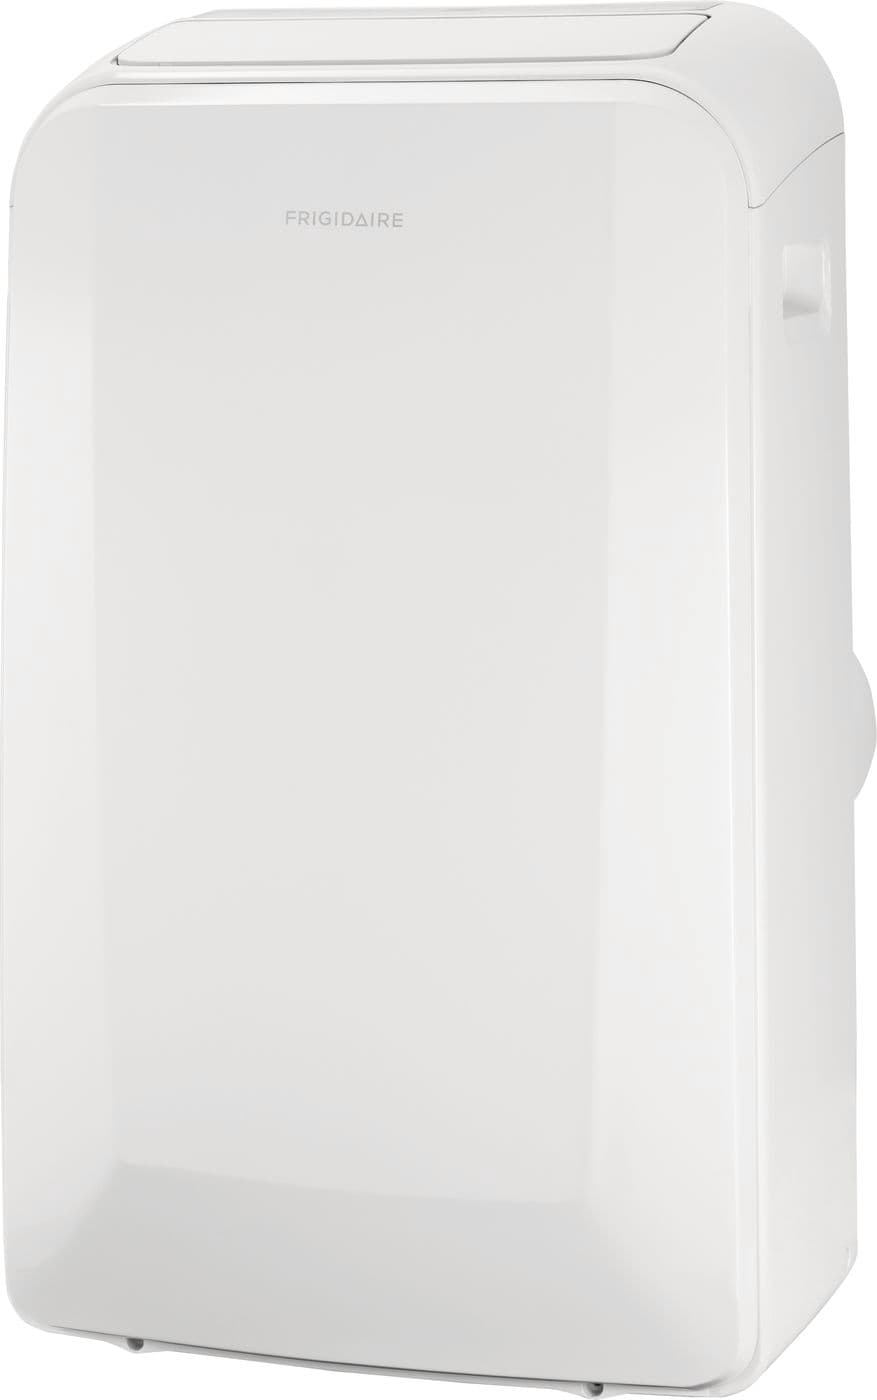 Model: FFPH1422R1 | Frigidaire 14,000 BTU Portable Room Air Conditioner with Supplemental Heat